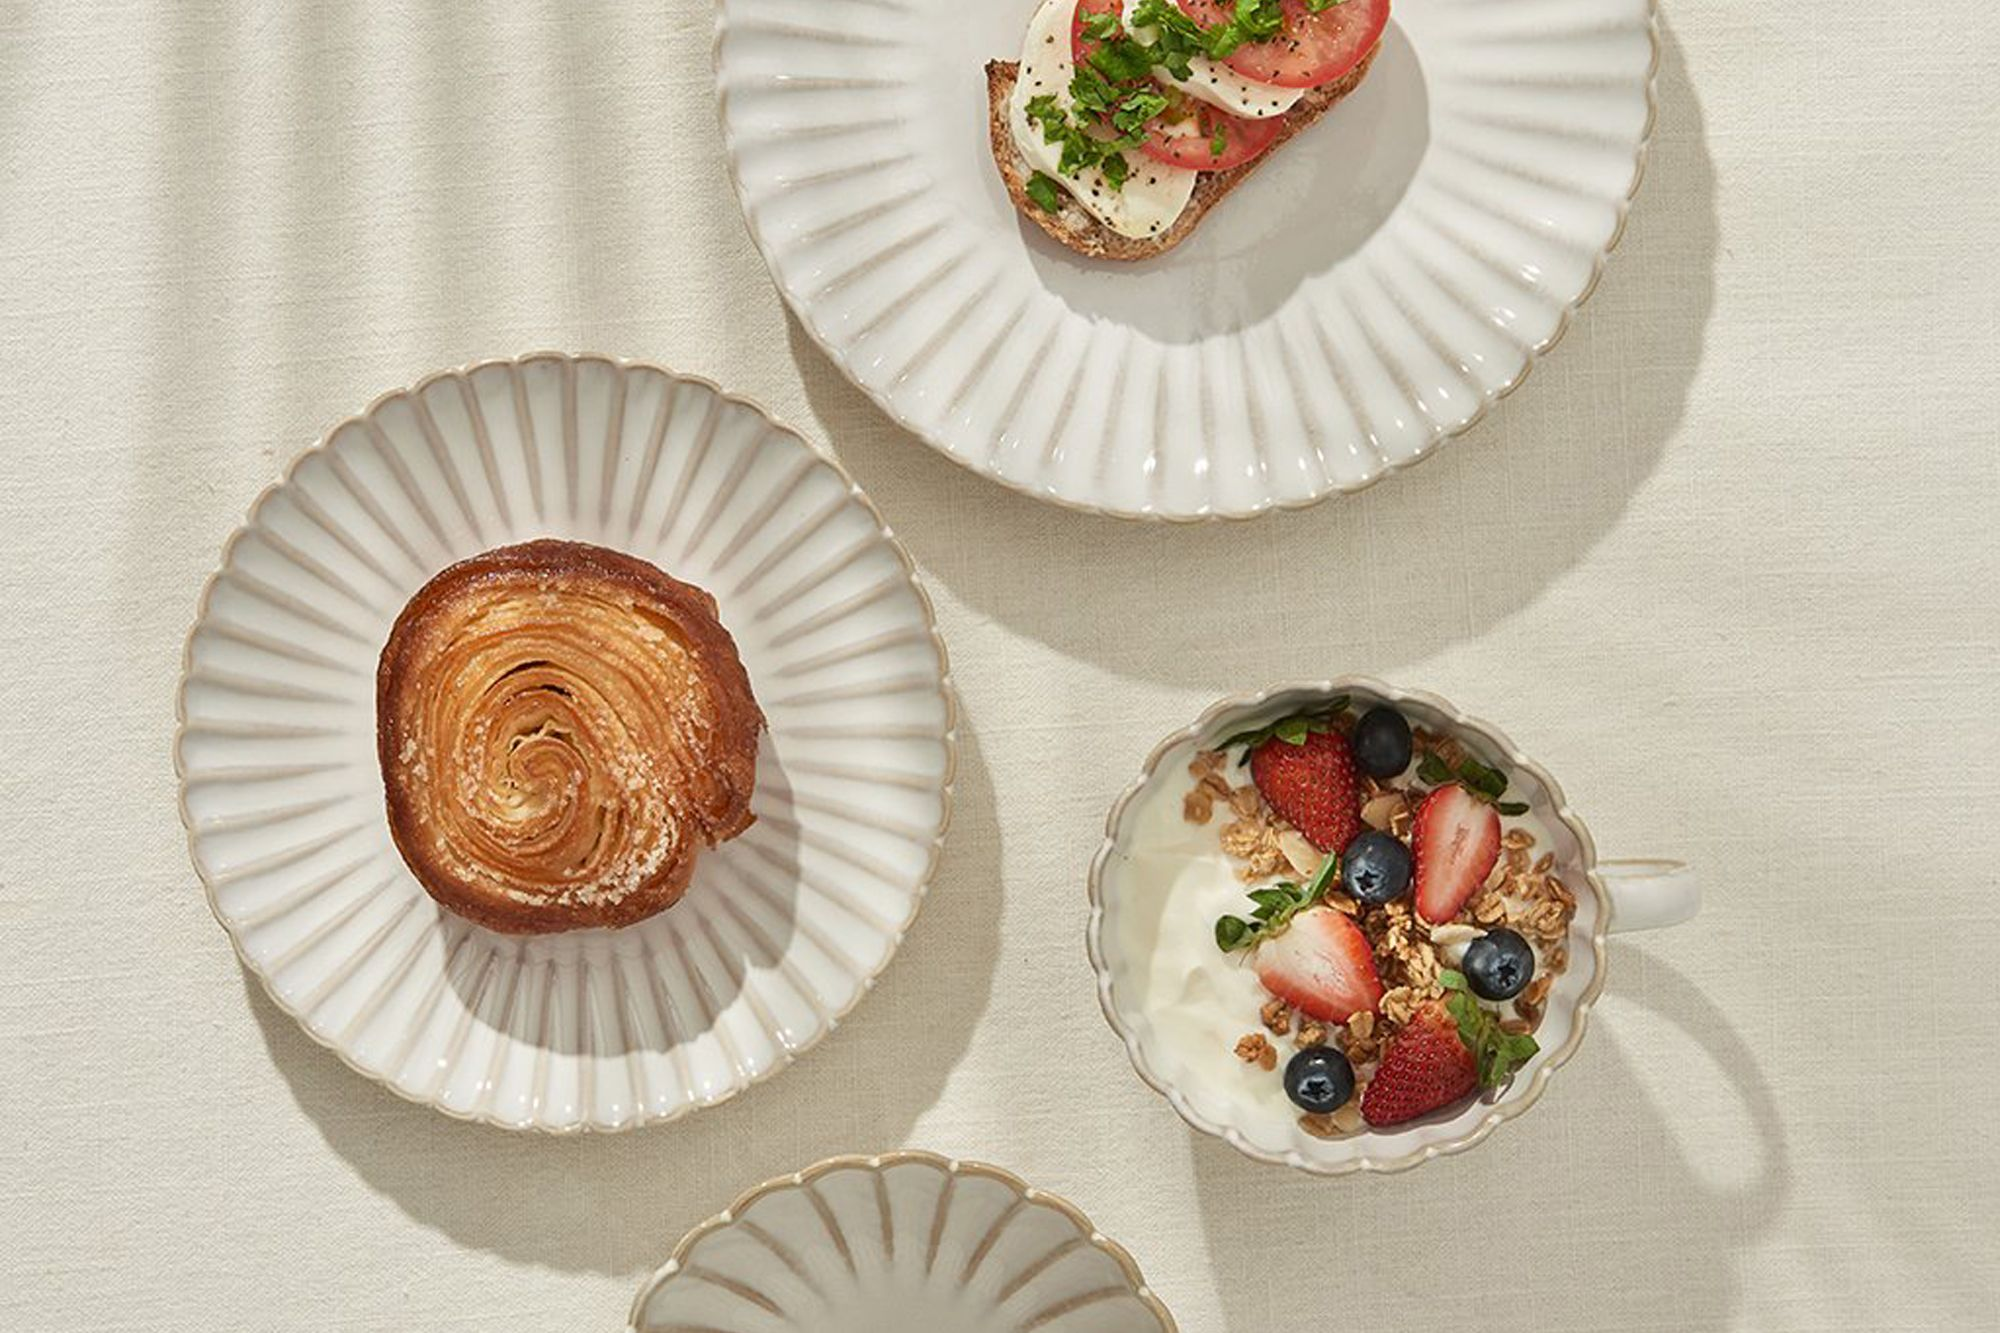 The dinnerware set adds an elegance and sophistication to any tabletop Photo: Eloise